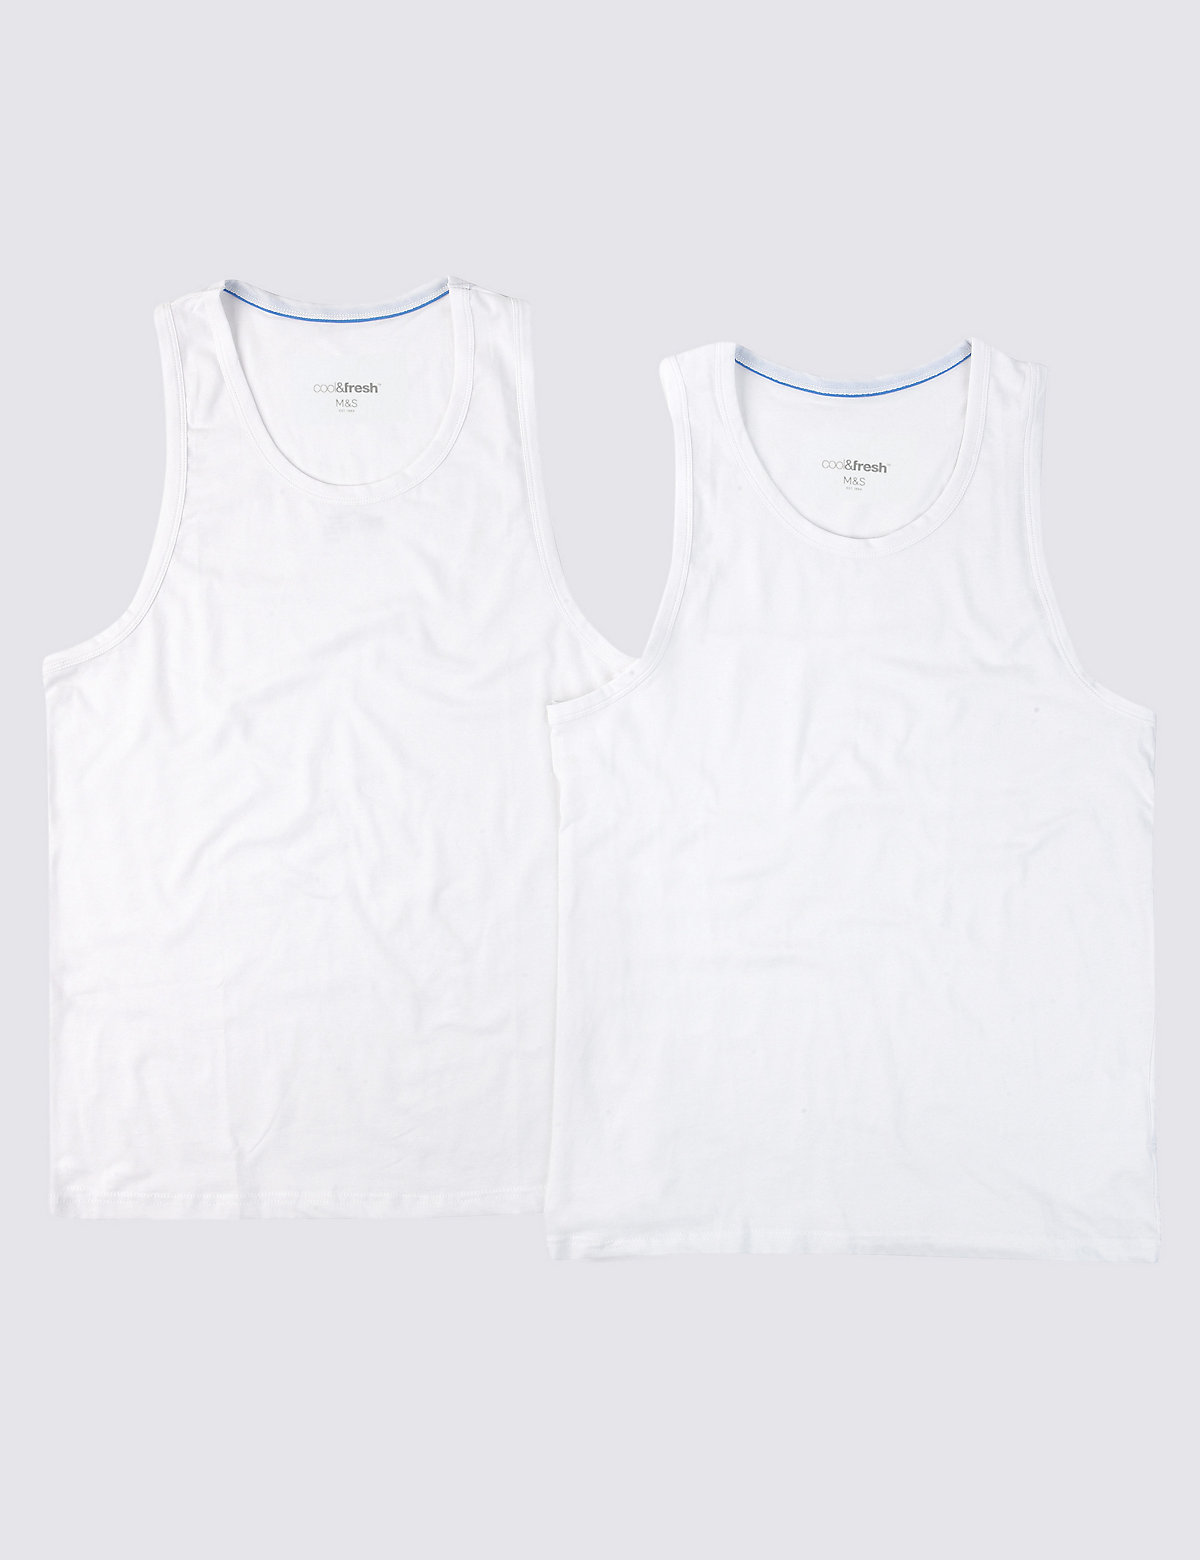 M&S Collection XXXL 2 Pack 4-Way Stretch Cotton Vests with StayNEW